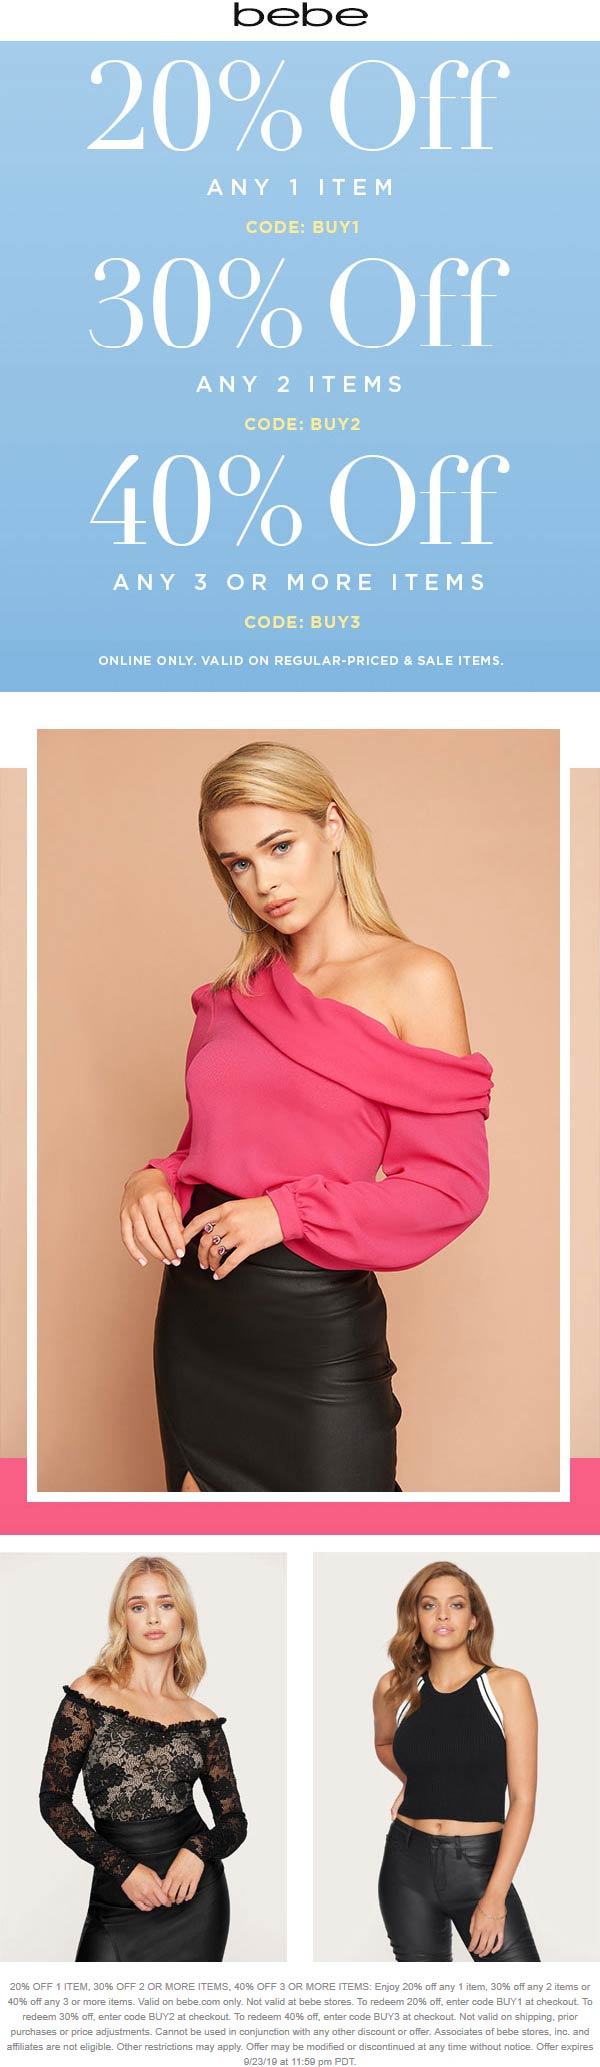 Bebe coupons & promo code for [April 2020]